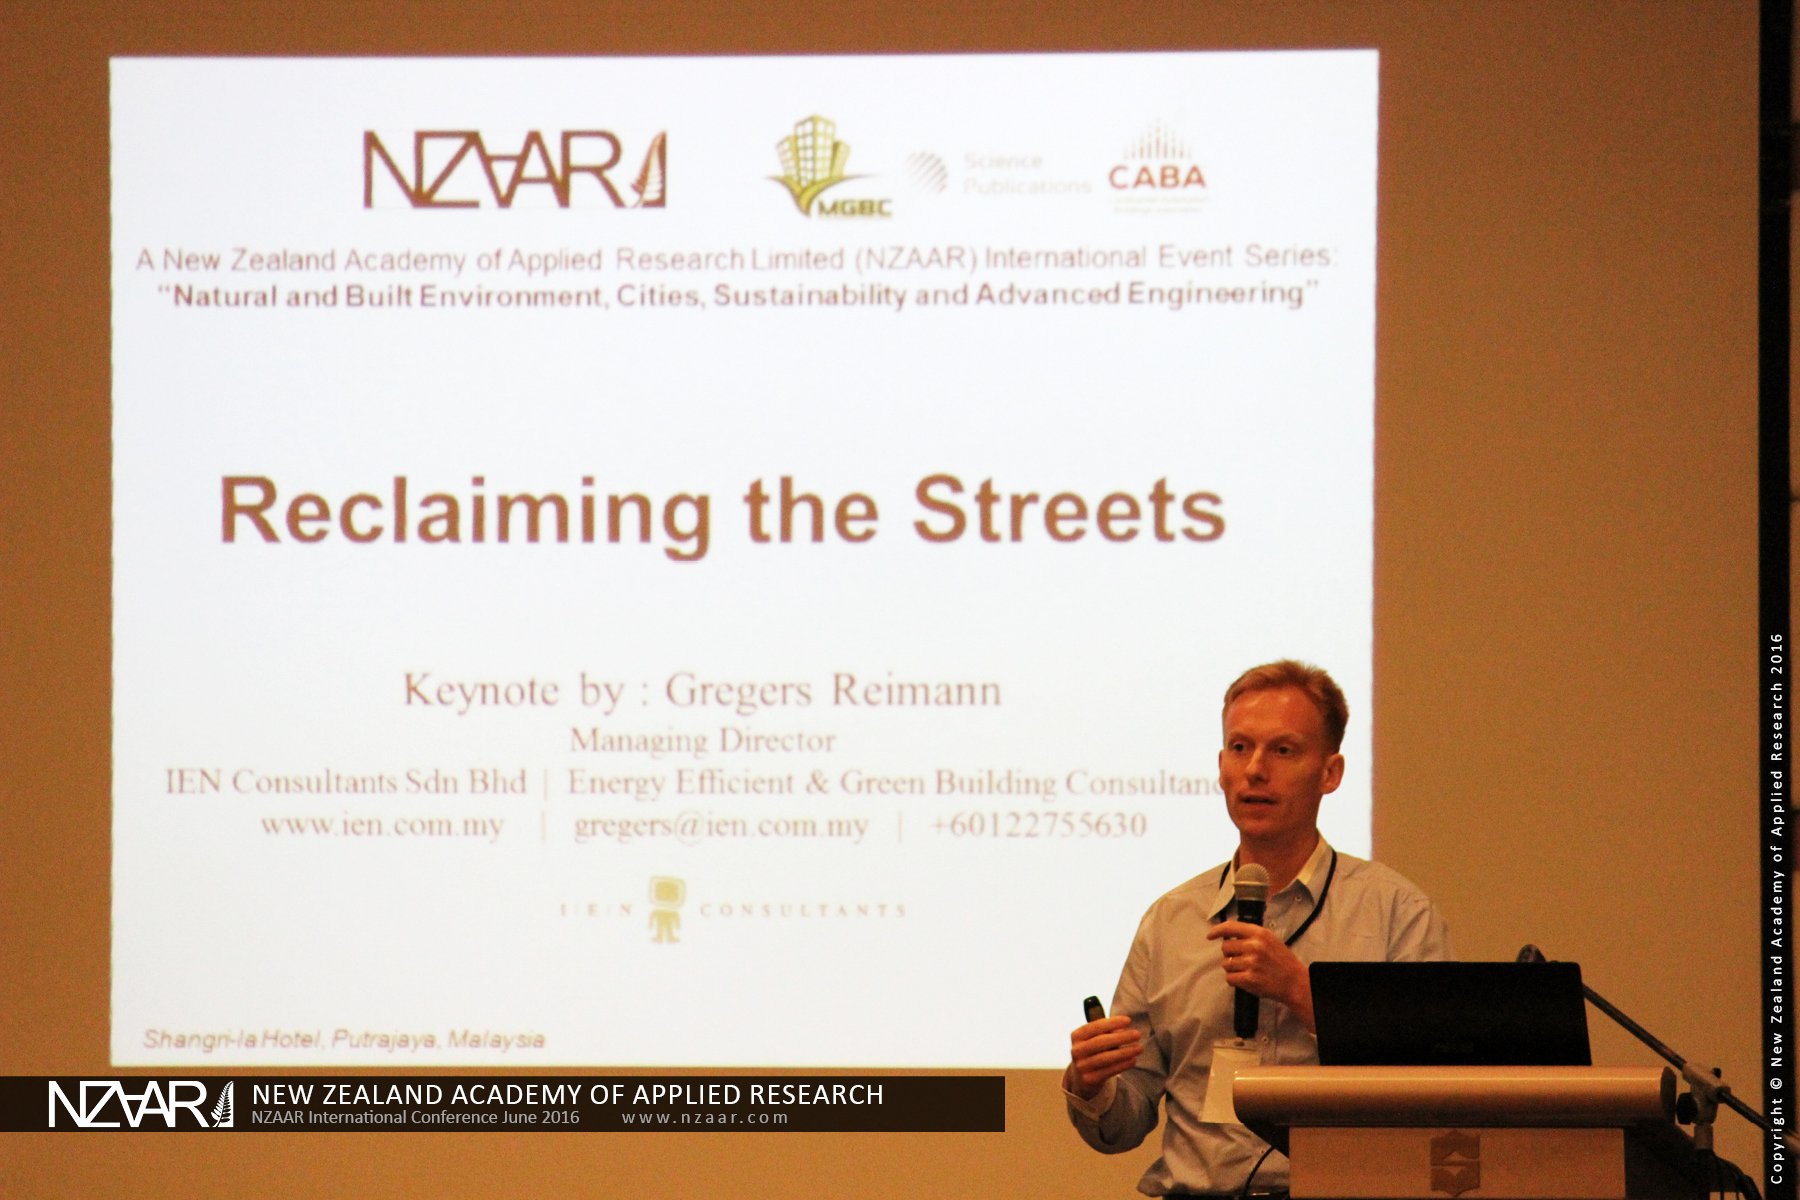 NZAAR Conference Photos12.jpg